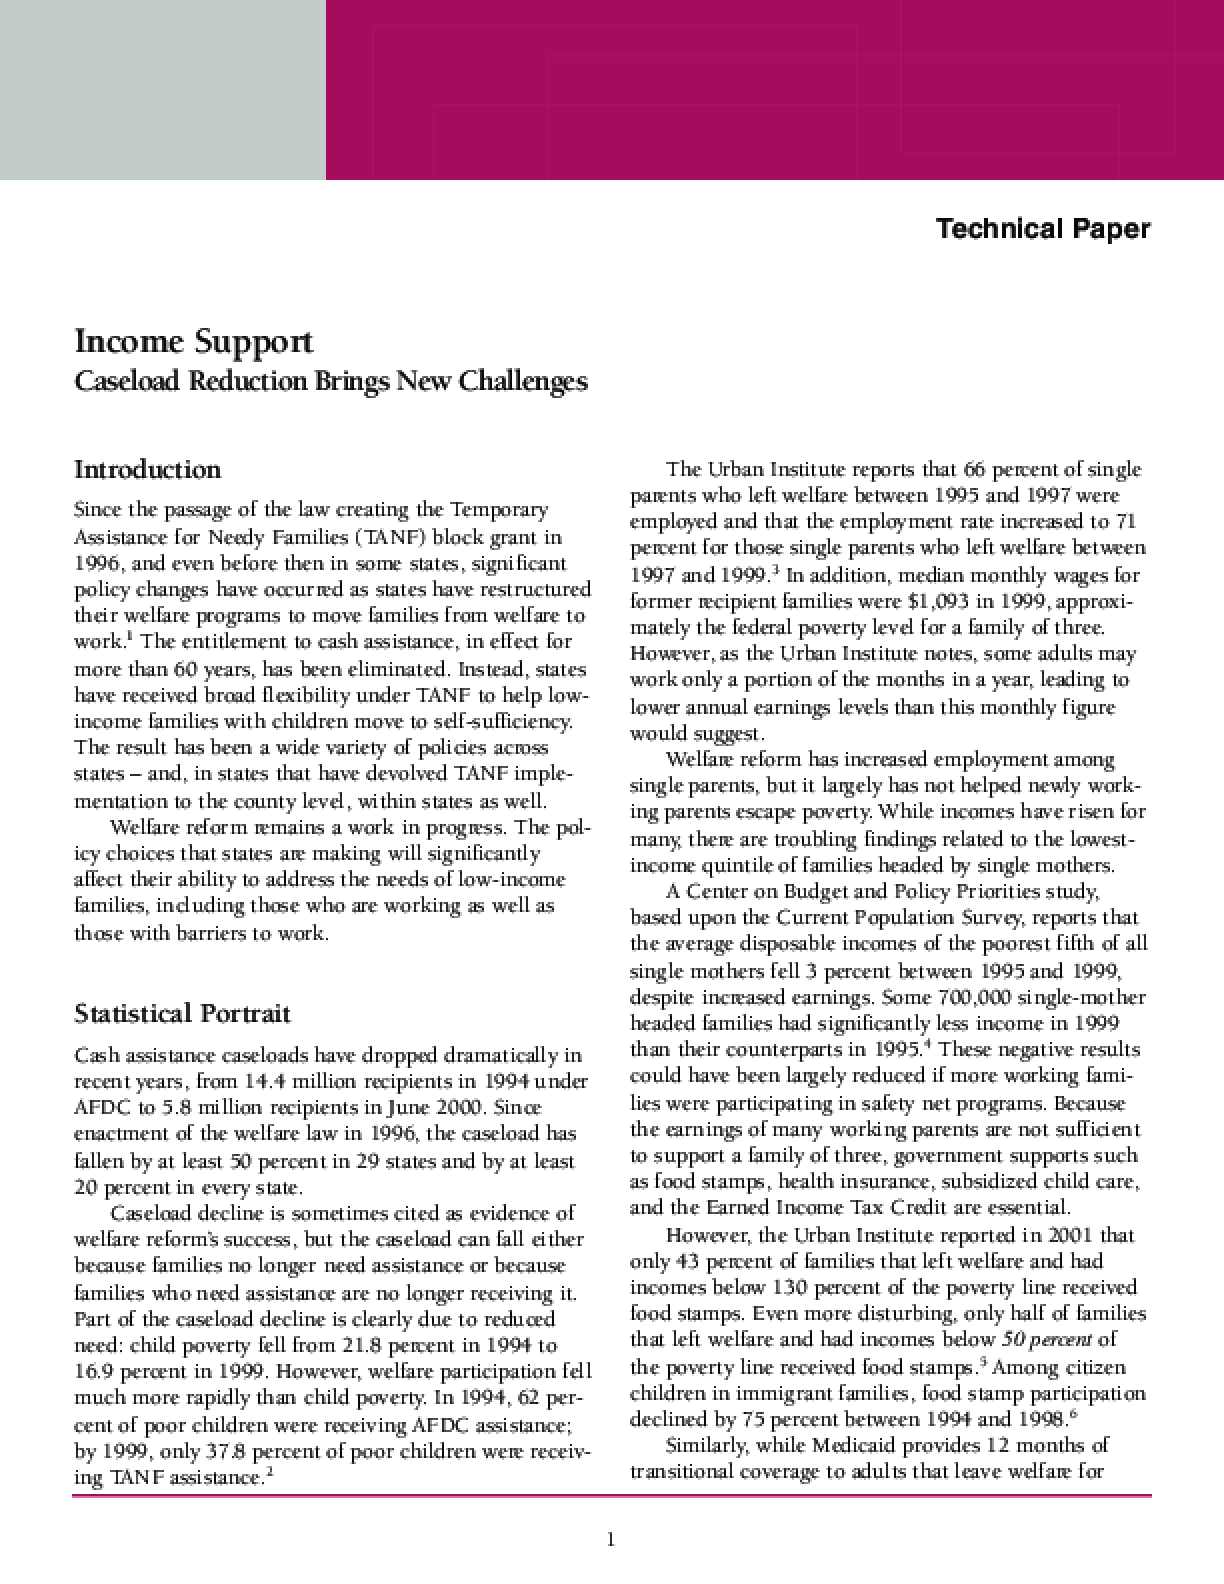 Income Support: Caseload Reduction Brings New Challenges